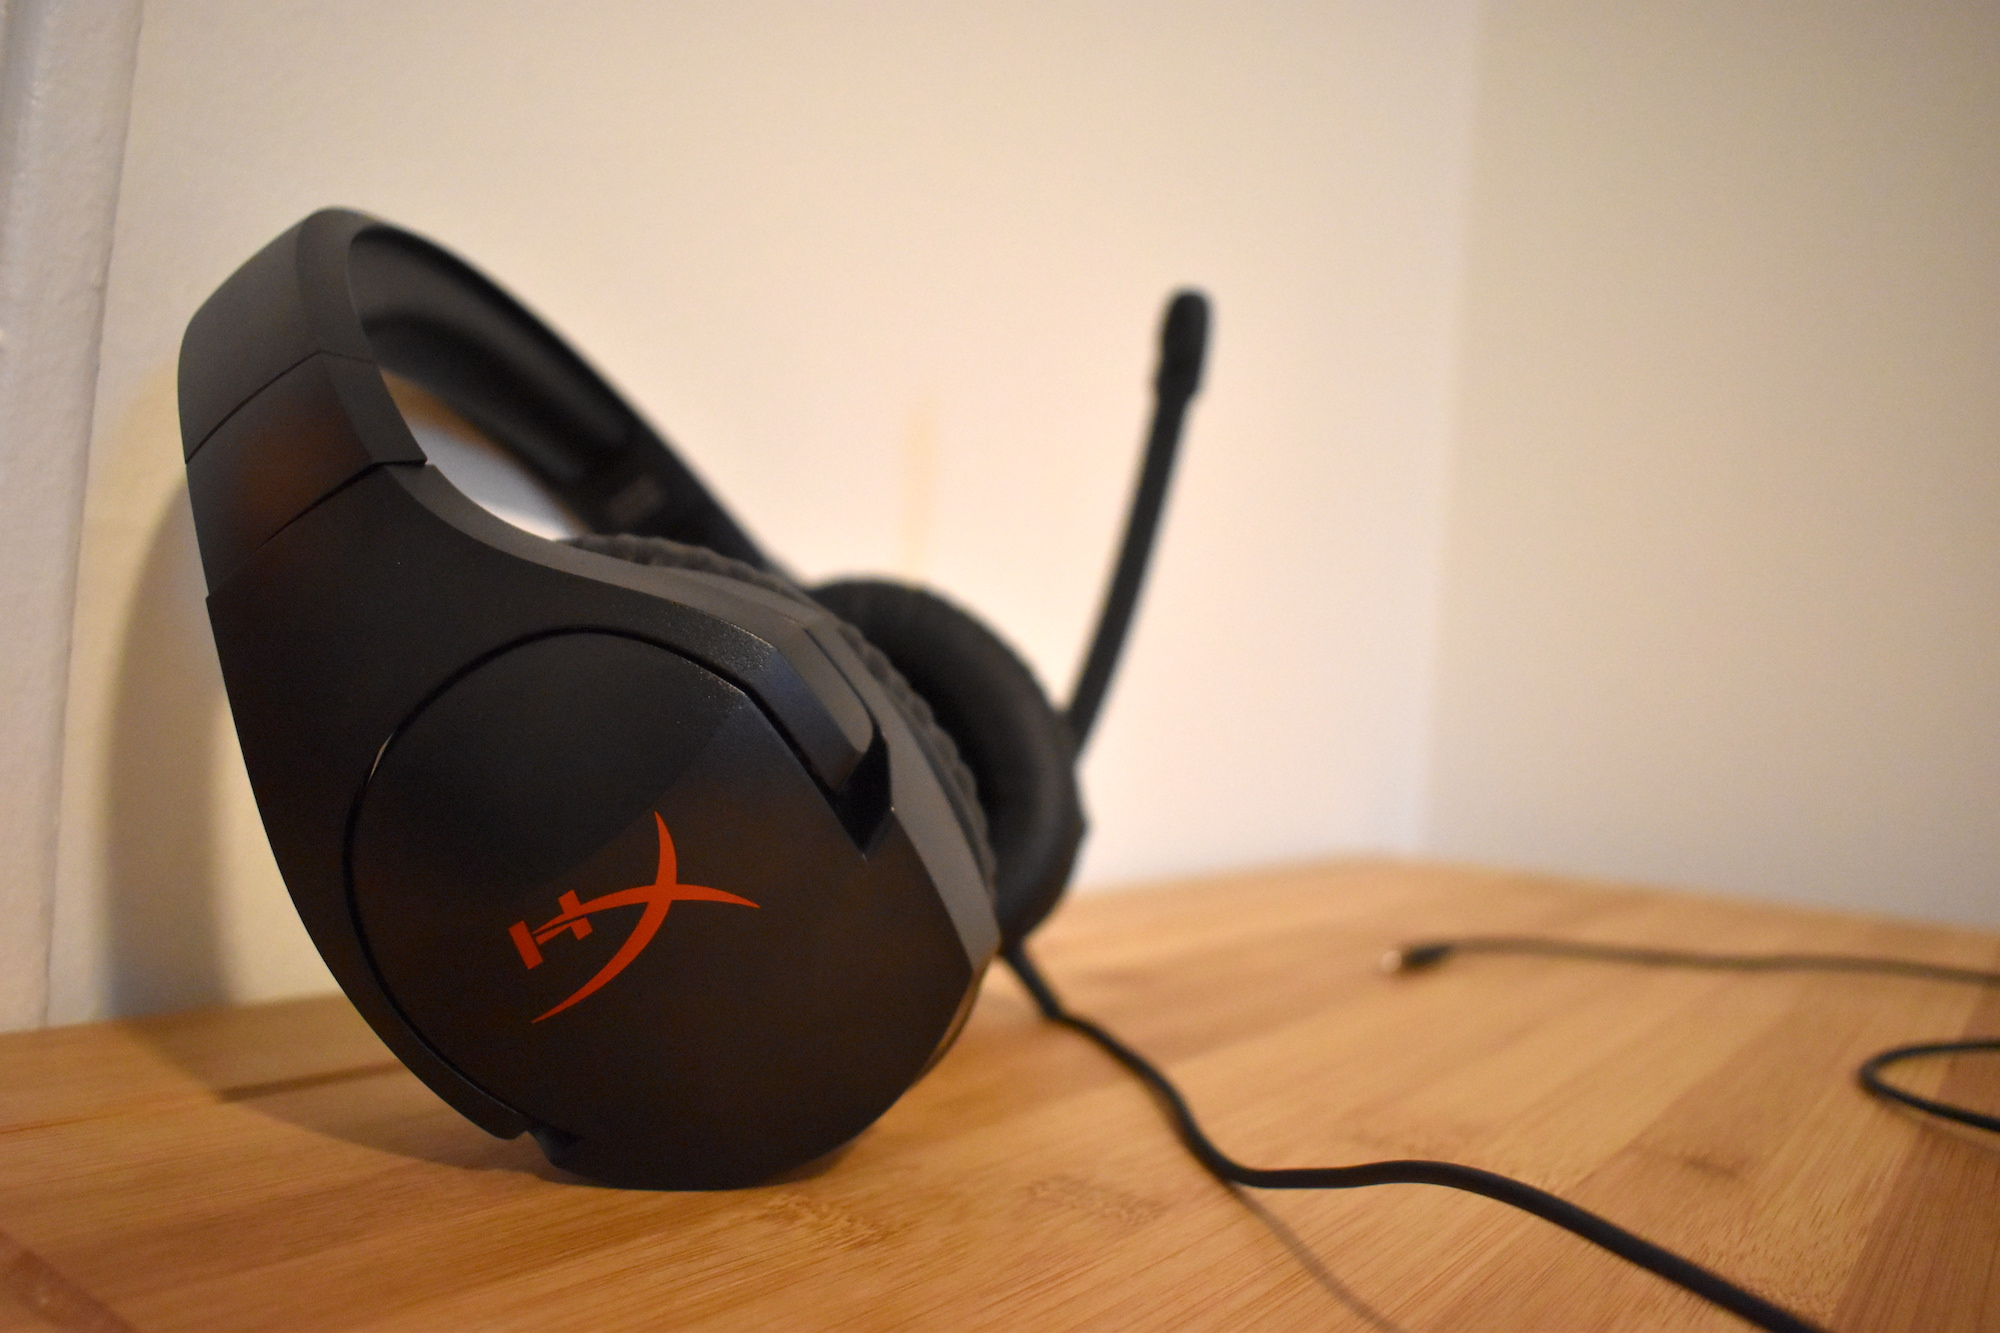 The HyperX Cloud Stinger is a good gaming headset for those on a budget.